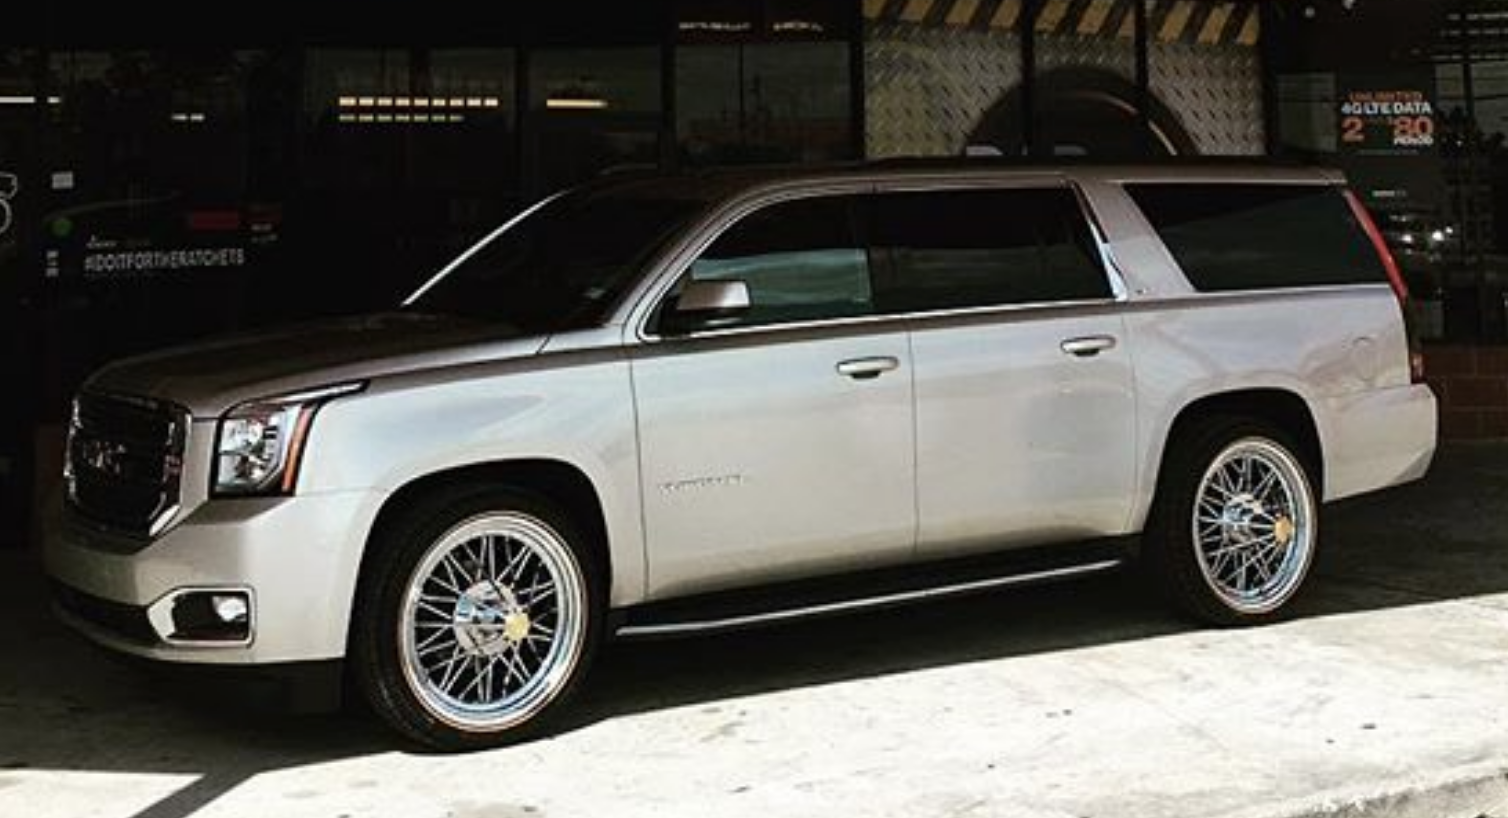 Gmc Yukon With 24 Vogue Tyres And Spokes What Do You Think